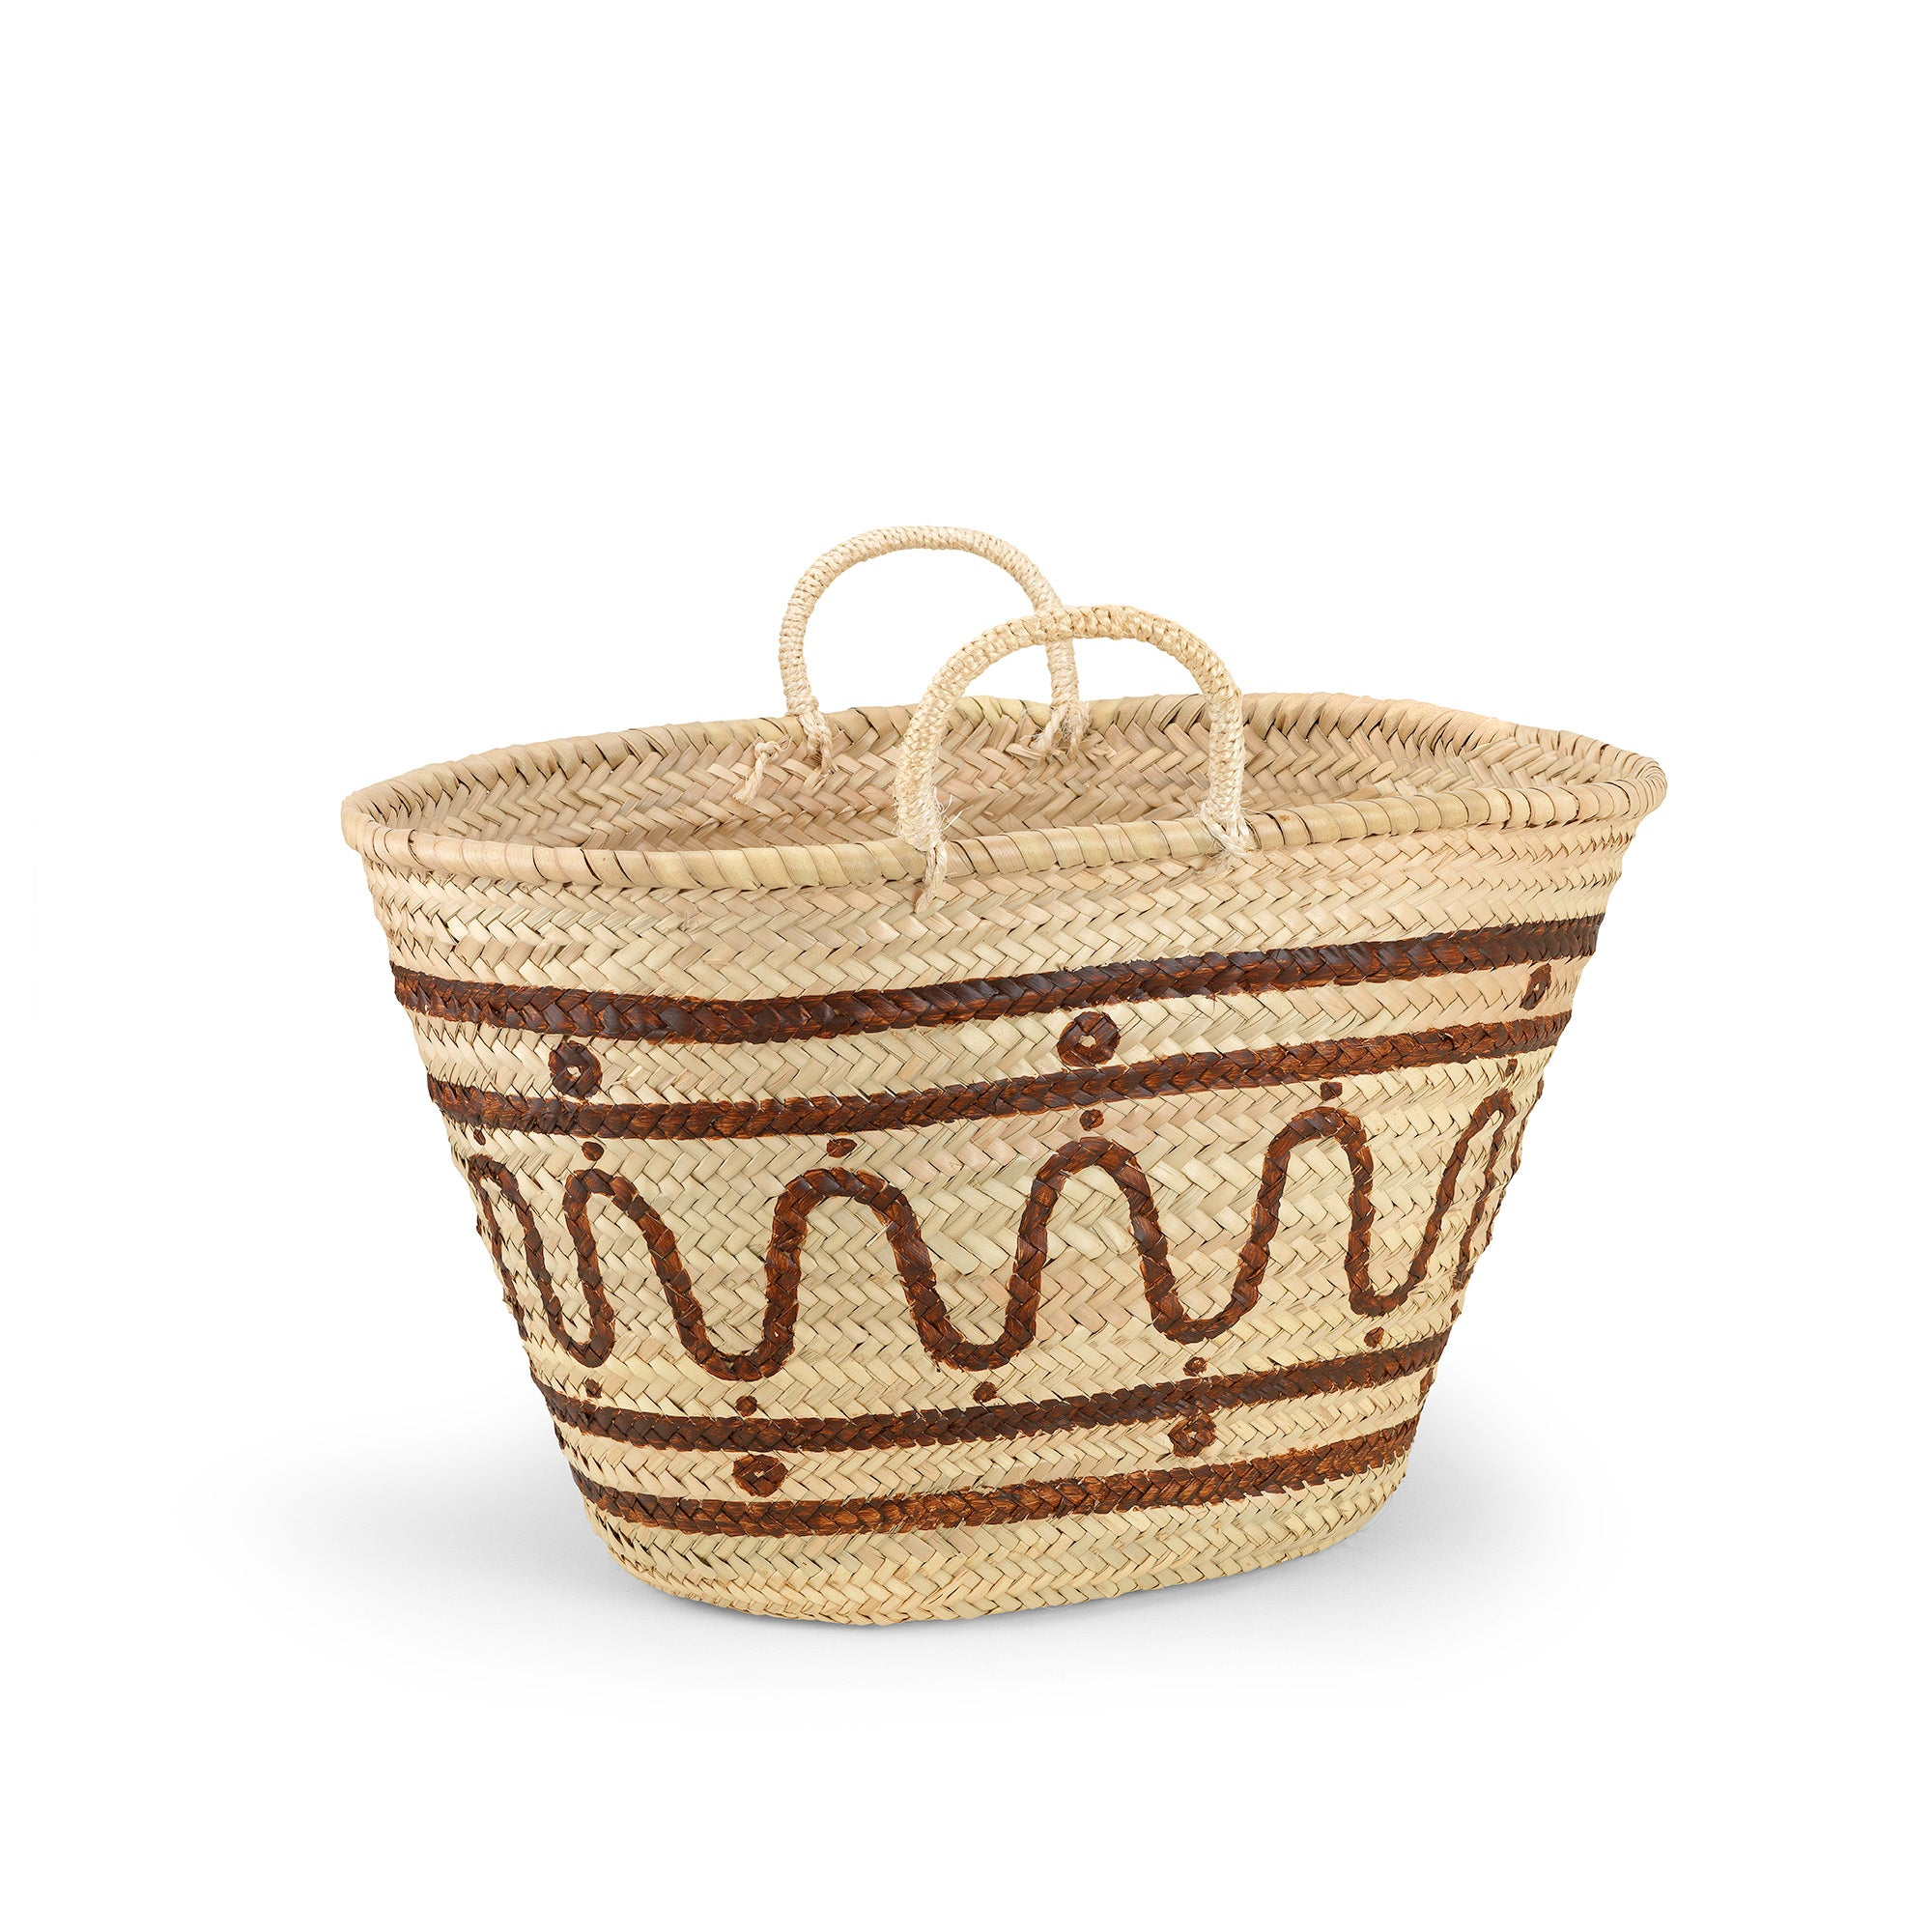 The Kyma Basket